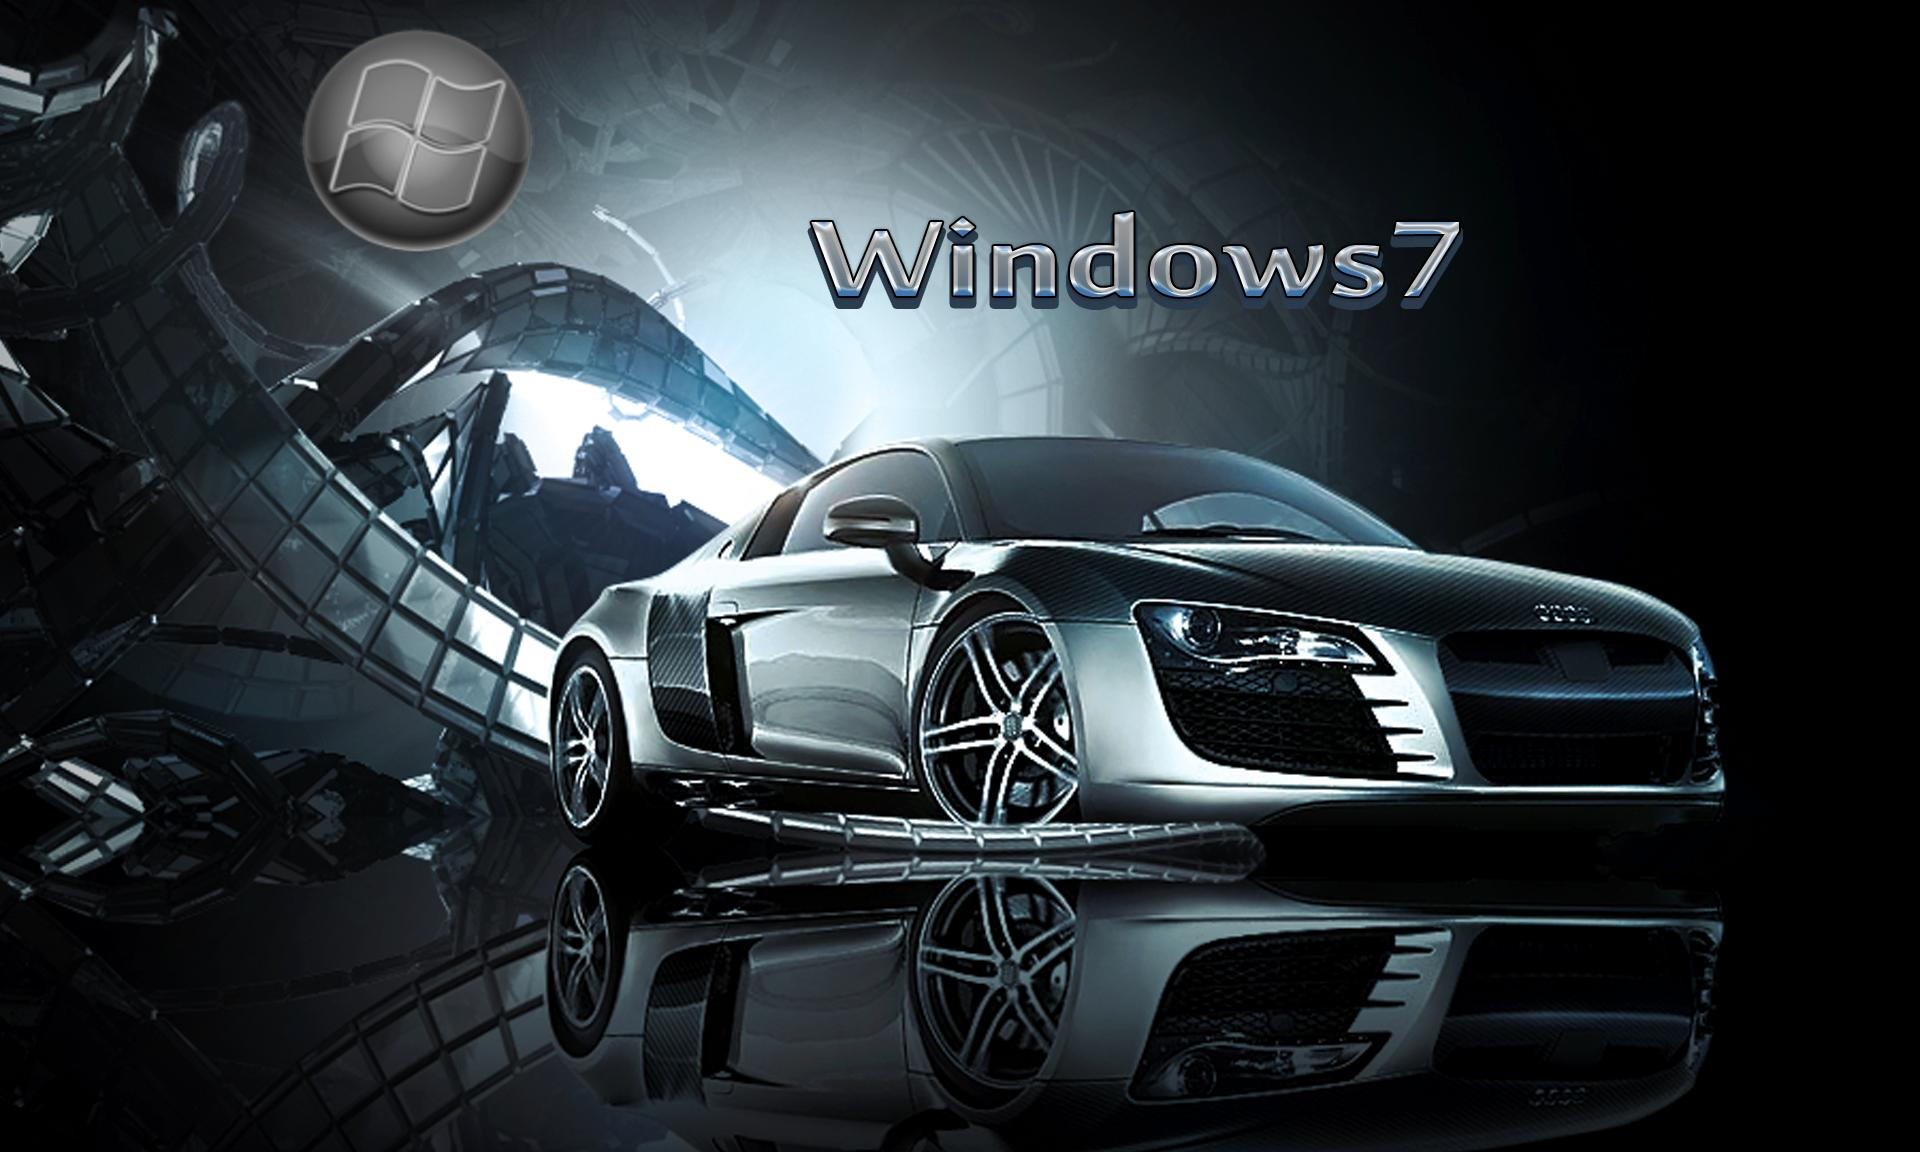 Wallpaper For Windows 7 Free Download Posted By Samantha Mercado